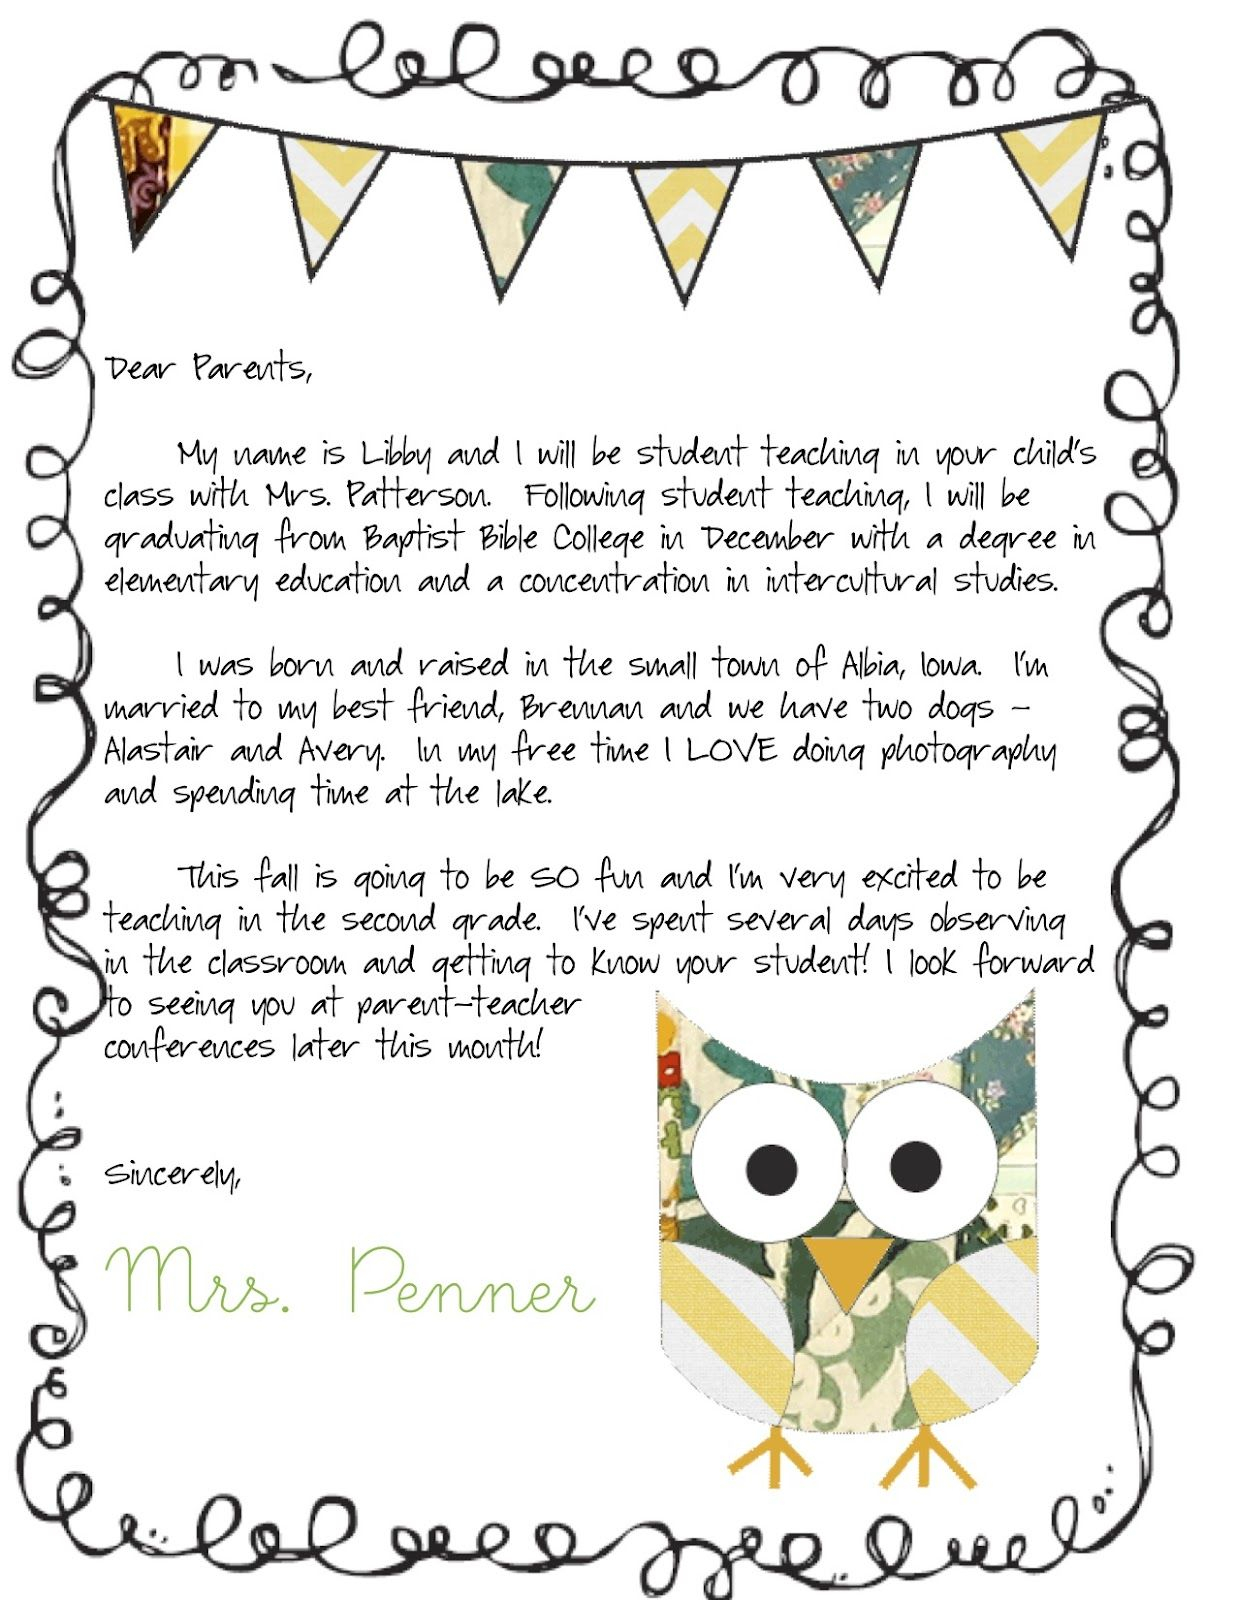 Preschool Welcome Letter To Parents From Teacher Template Samples